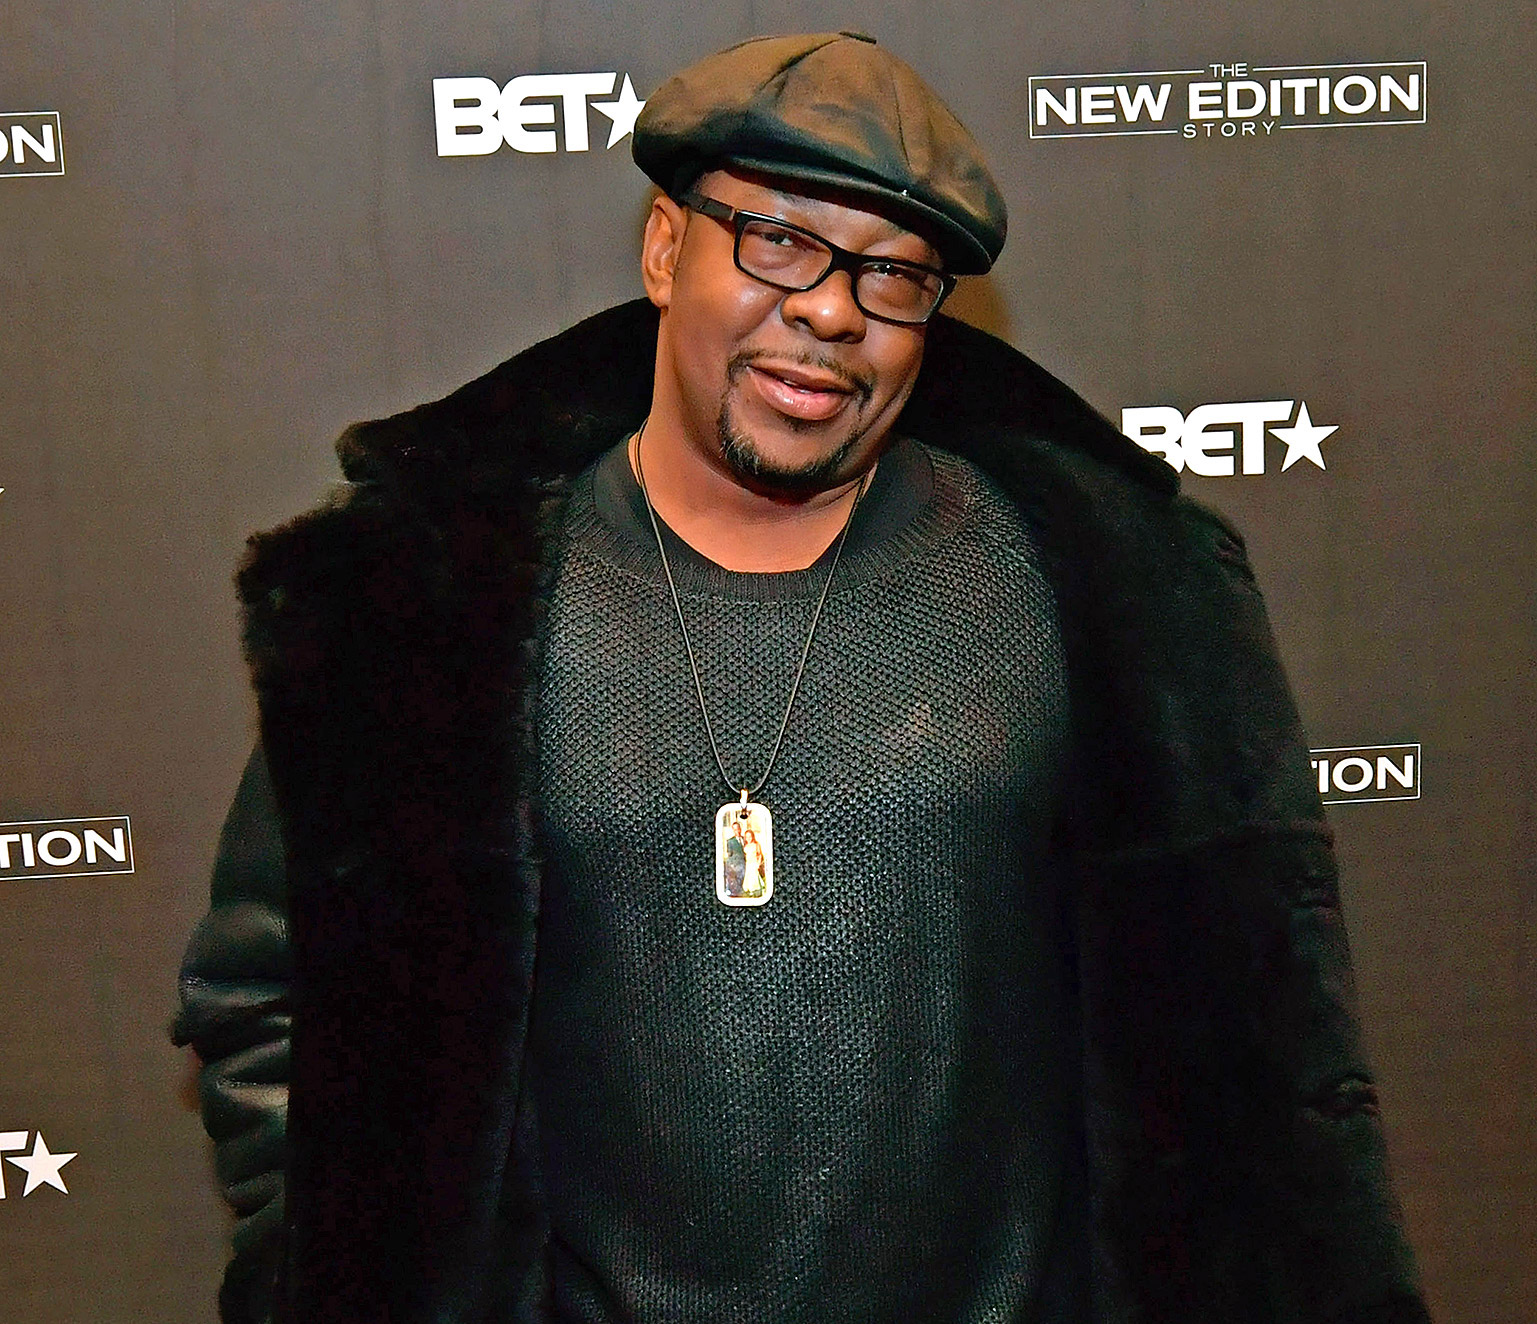 Bobby Brown to Build Domestic Violence Shelter to Honor Late Daughter Bobbi Kristina